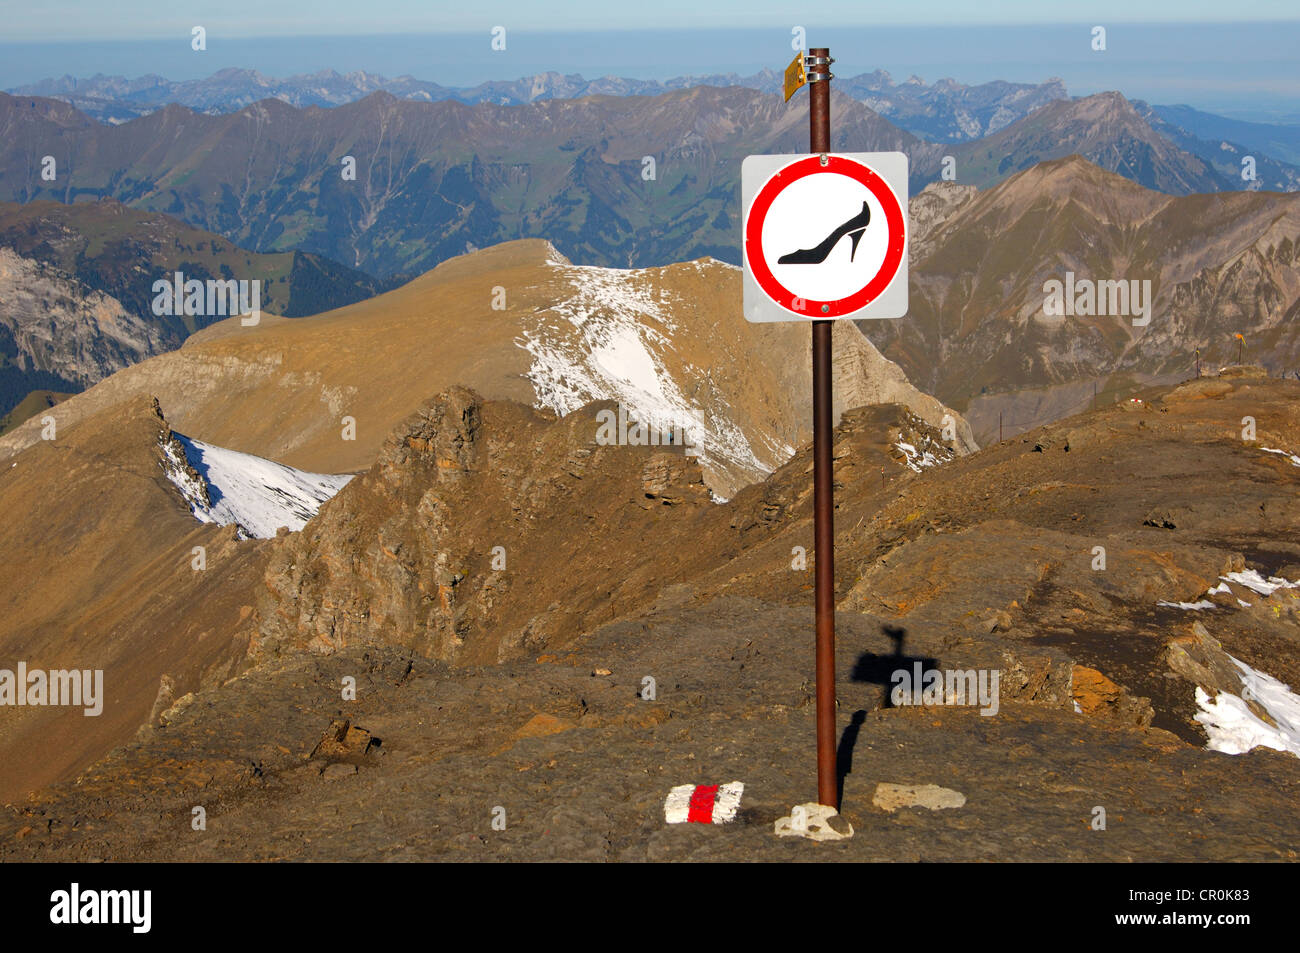 Prohibition sign for use of the mountain trail with unsuitable footwear on Schilthorn Mountain, , Switzerland, Europe - Stock Image